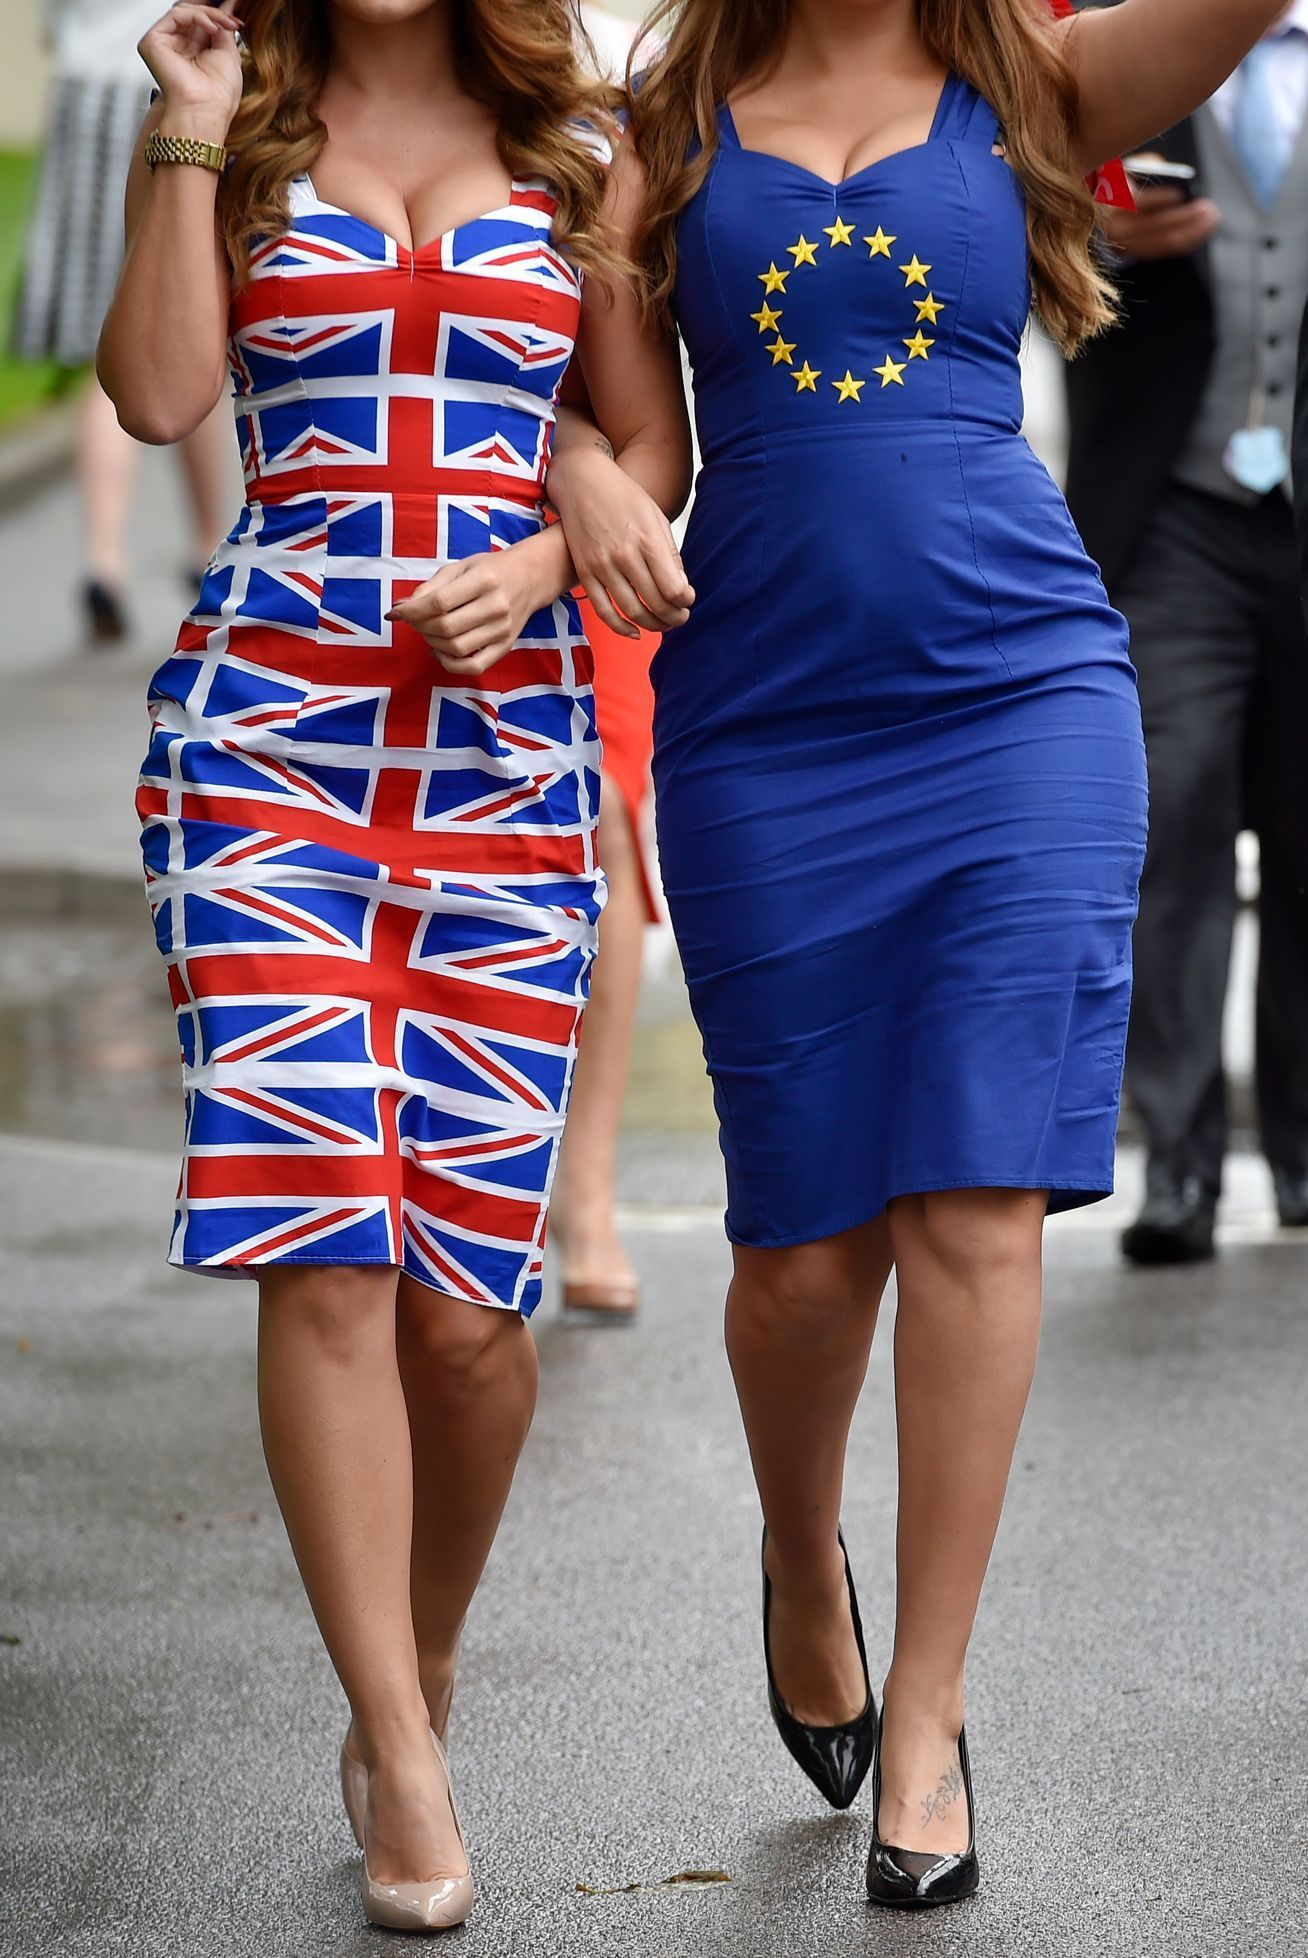 Brexit General view of racegoers in Britain and EU referendum themed dresses